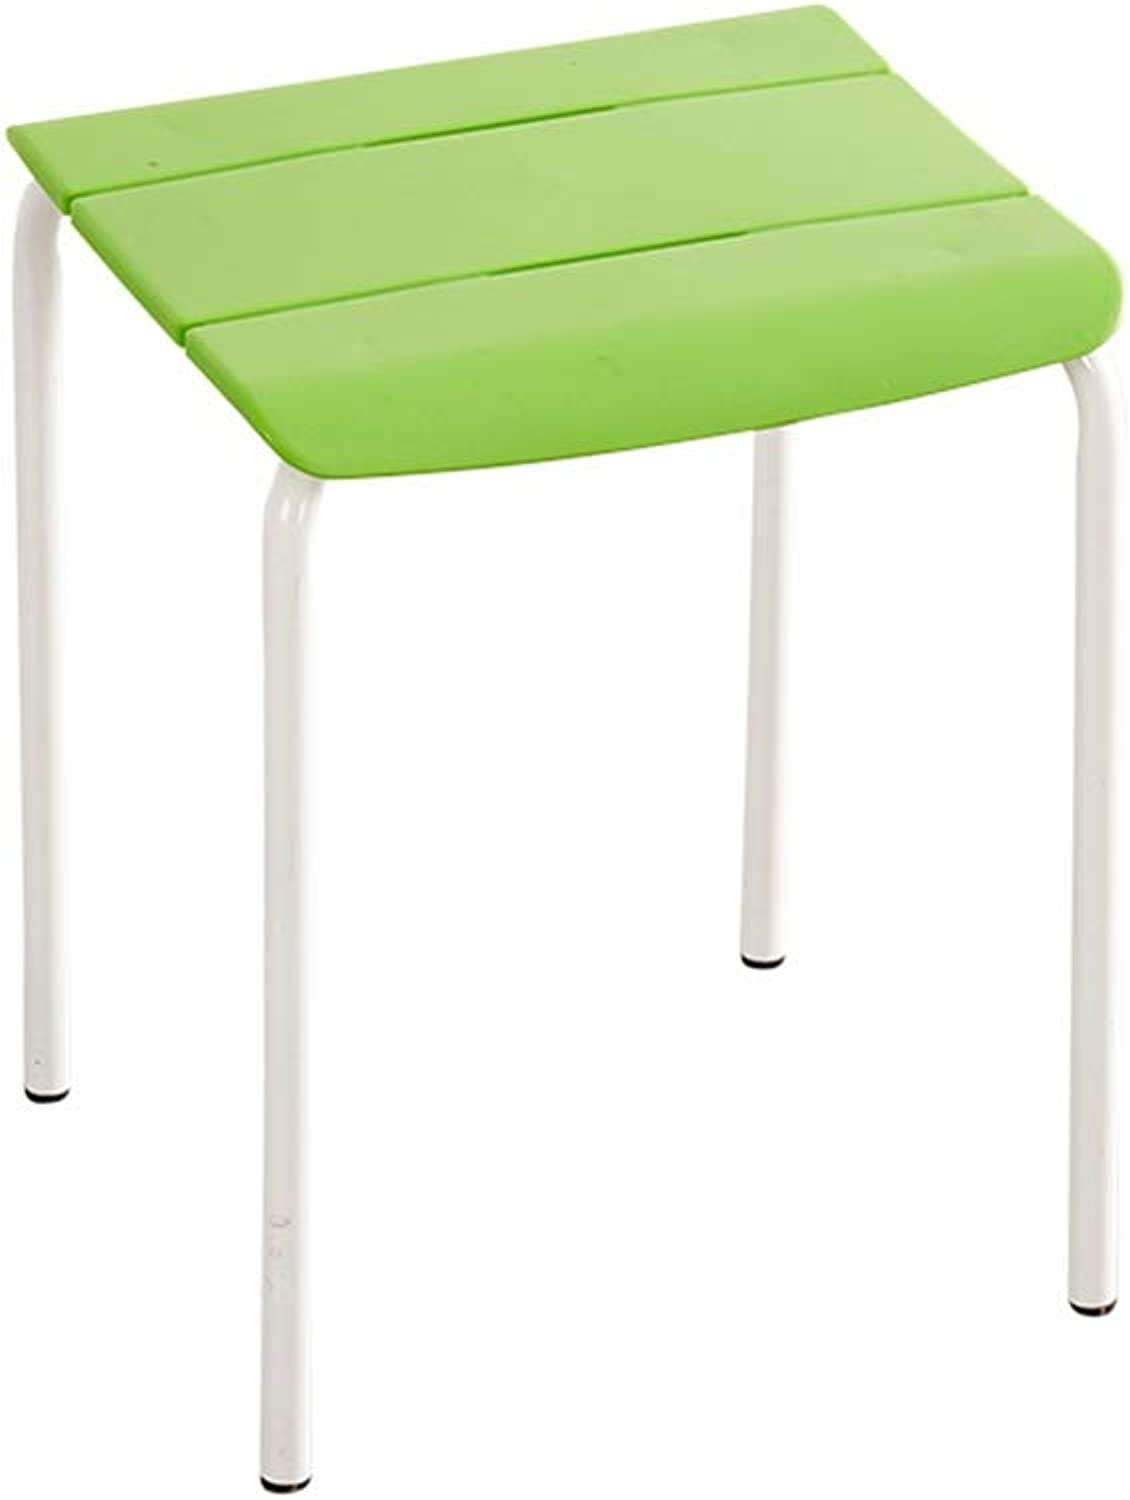 Easy to Store Stools, Square Stool color Stool Bedroom Stool Home Stool Student Stool Office Stool Stackable Stool (color   Green)